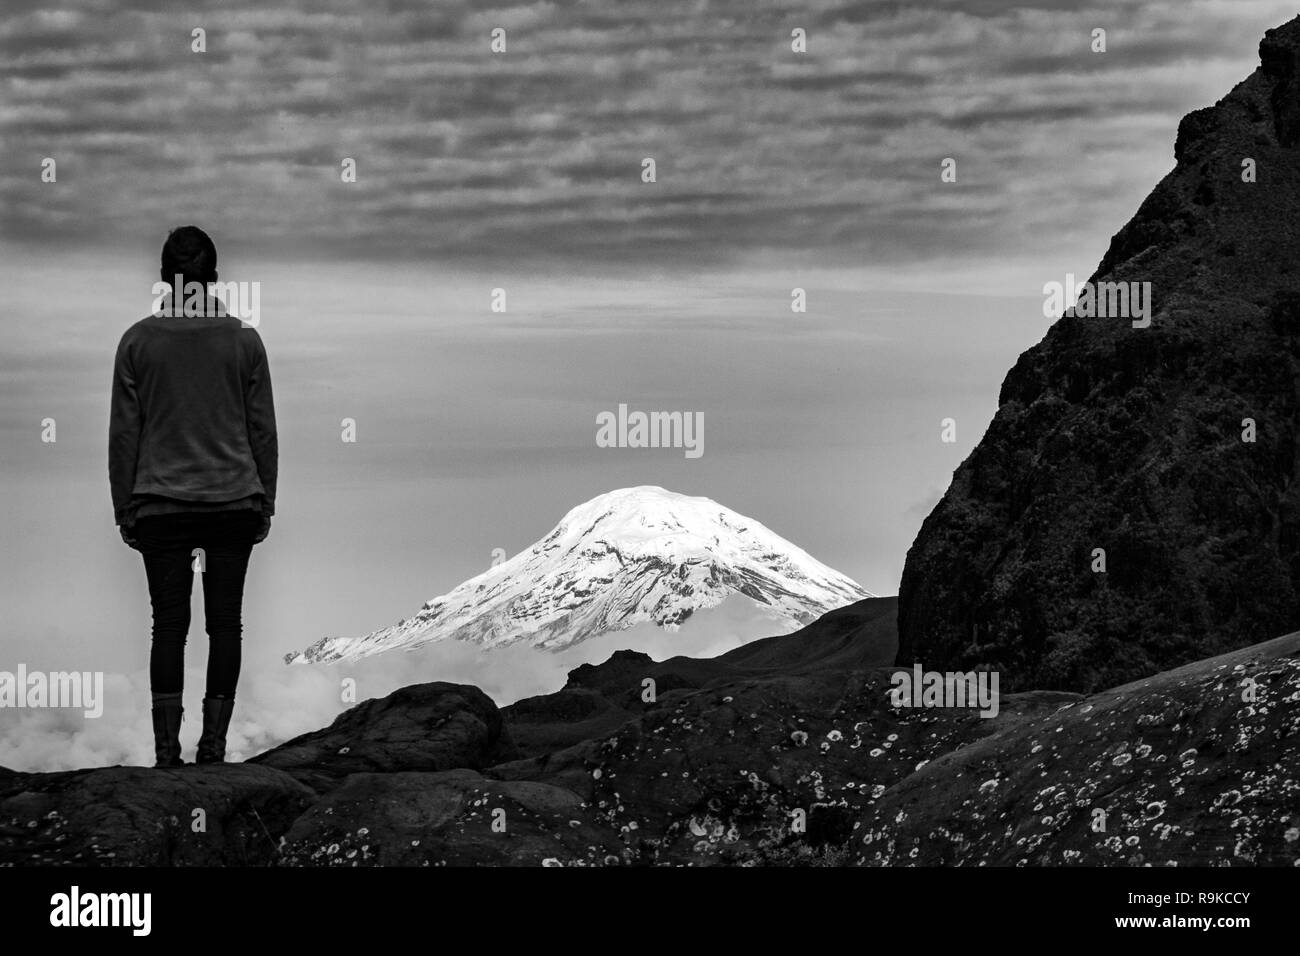 View of Volcano Chimborazo from volcano El Altar, Riobamba, Ecuador - Stock Image